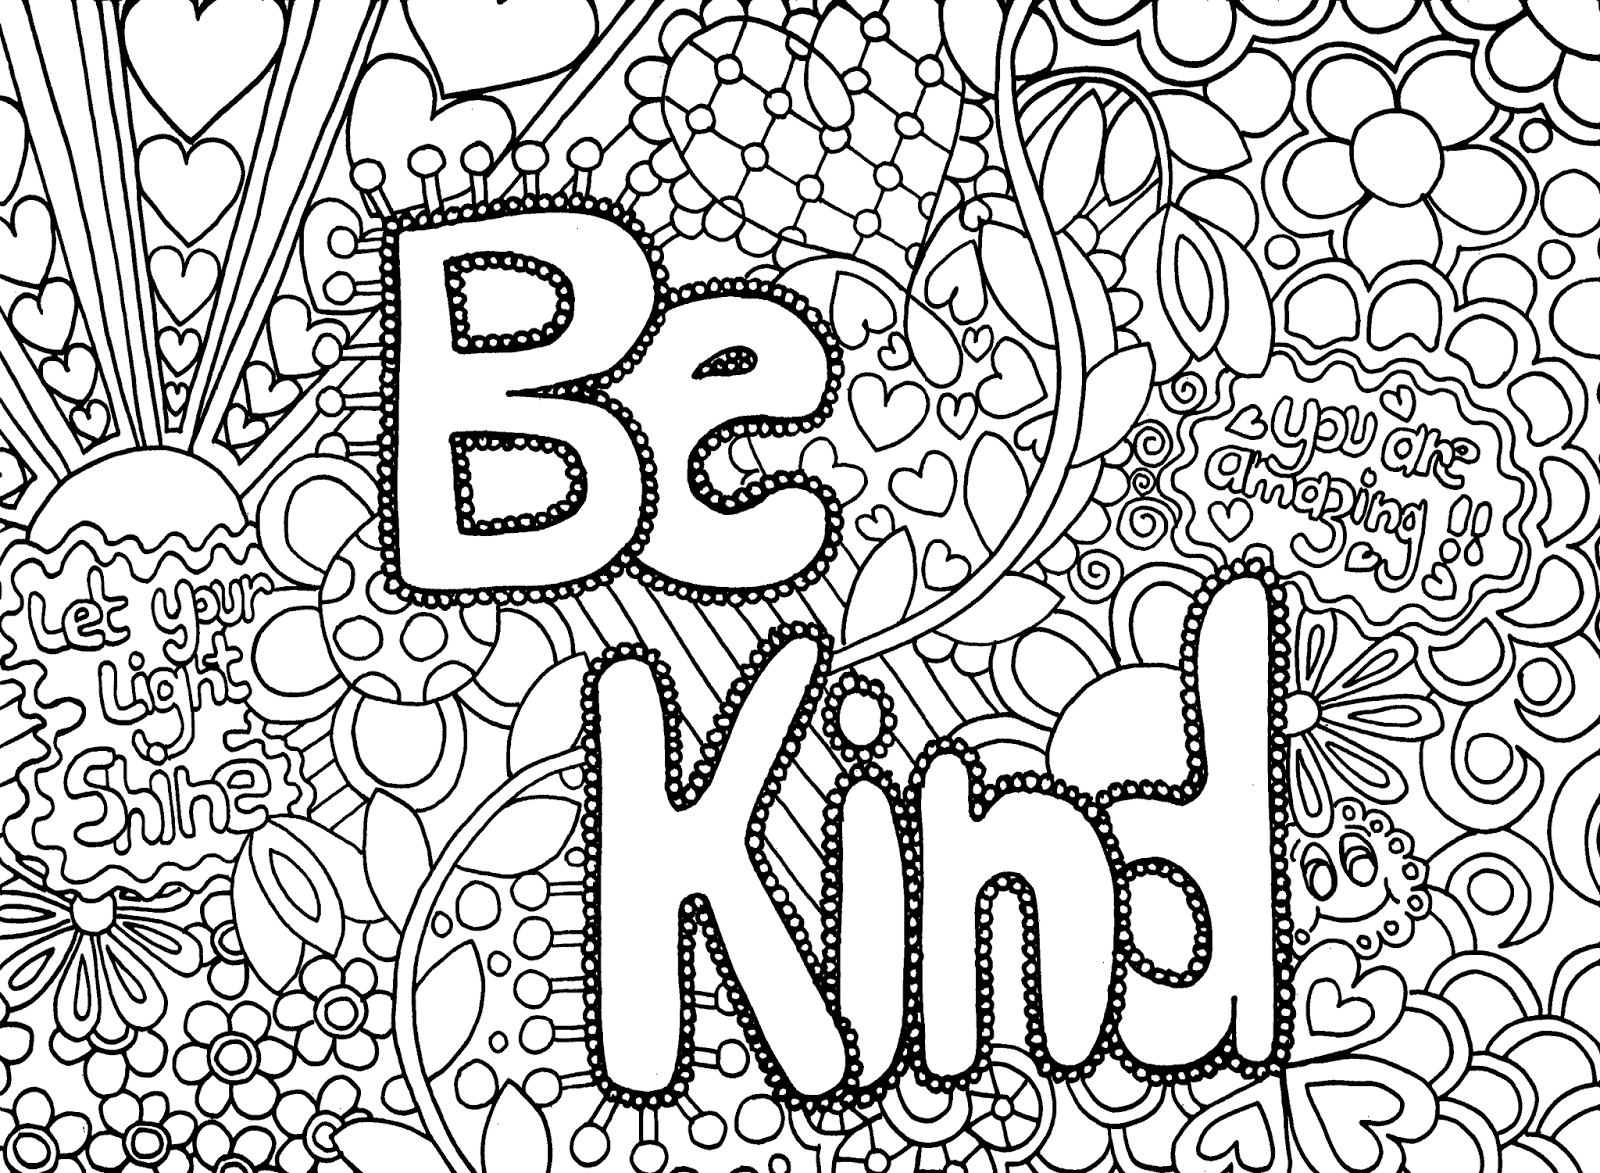 For The Last Few Years Kid's Coloring Pages Printed From The - Free Printable Coloring Pages On Respect